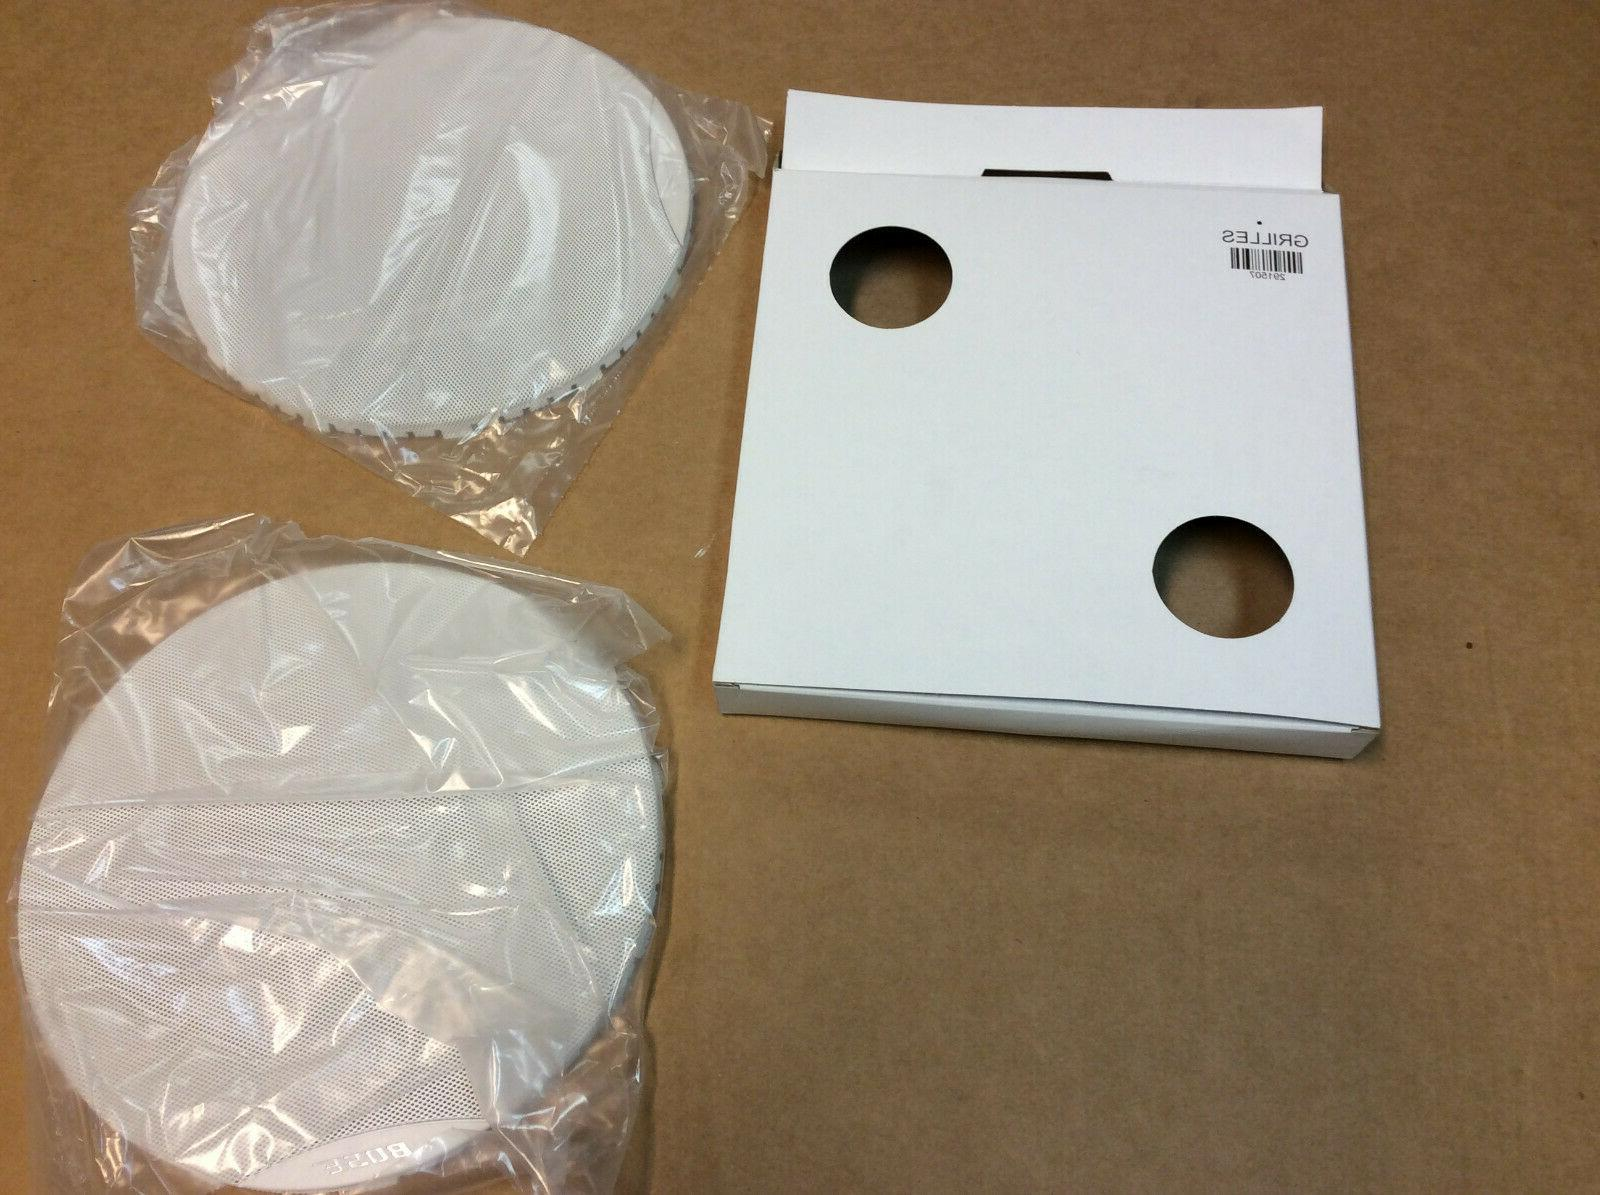 BOSE 191 Virtually Invisible Speakers,Round In-Wall/Ceiling,White